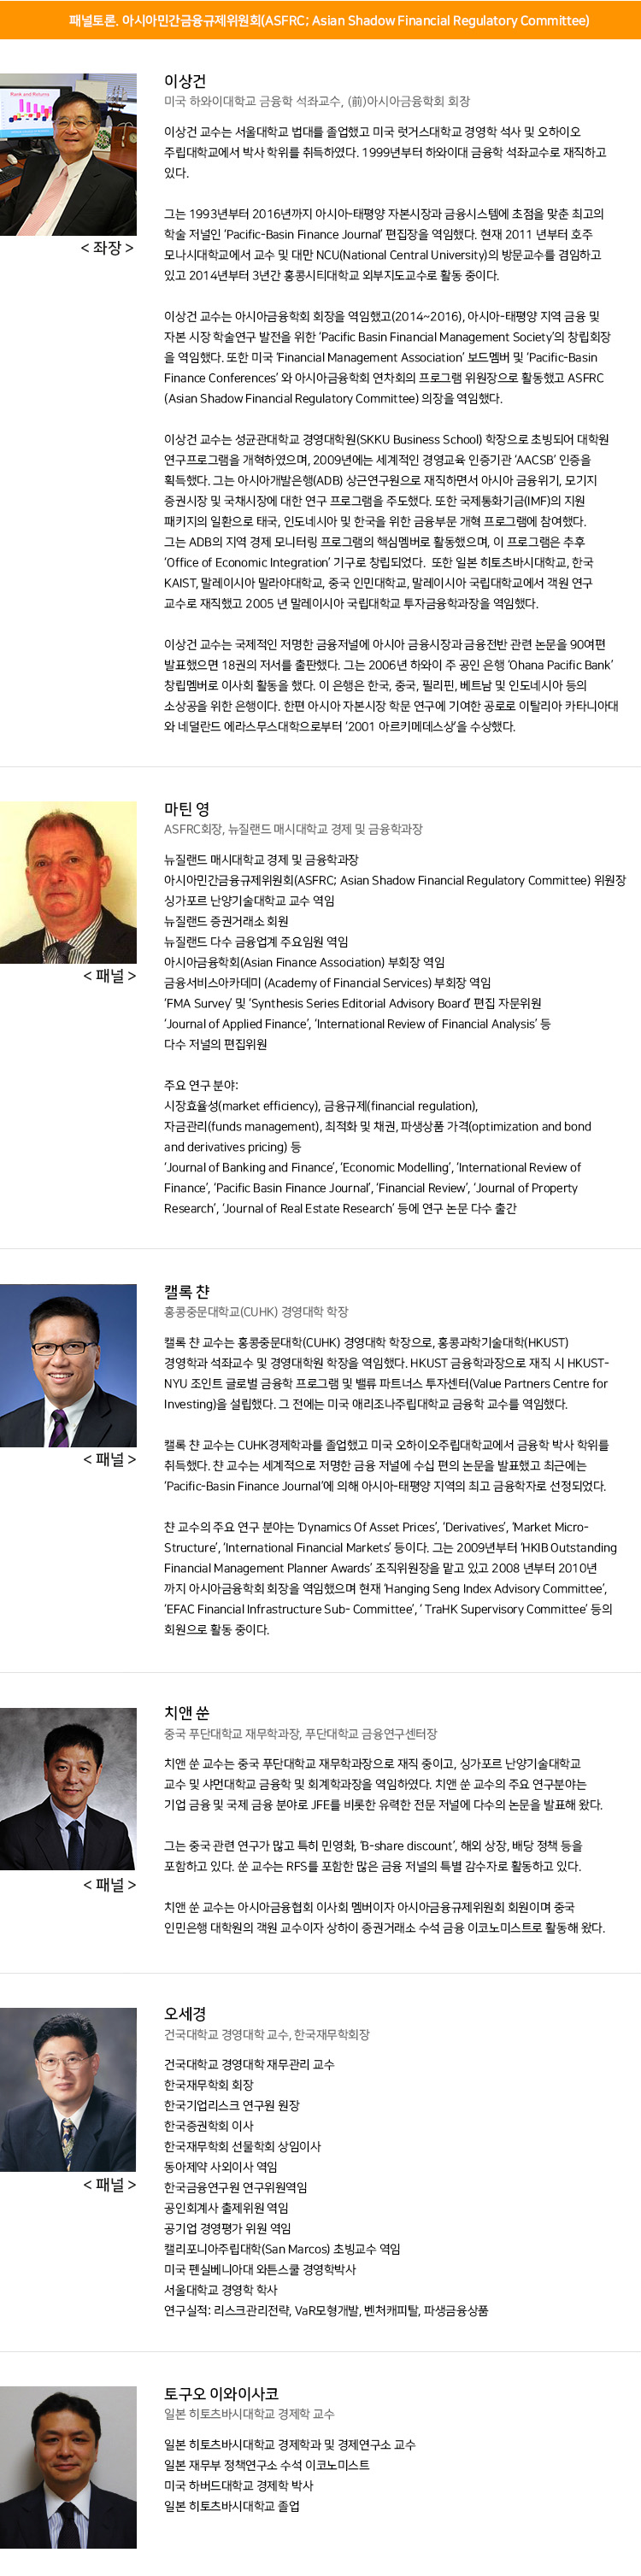 �⑤����濡�.������誘쇨�湲��듦���������(ASFRC; Asian Shadow Financial Regulatory Committee)